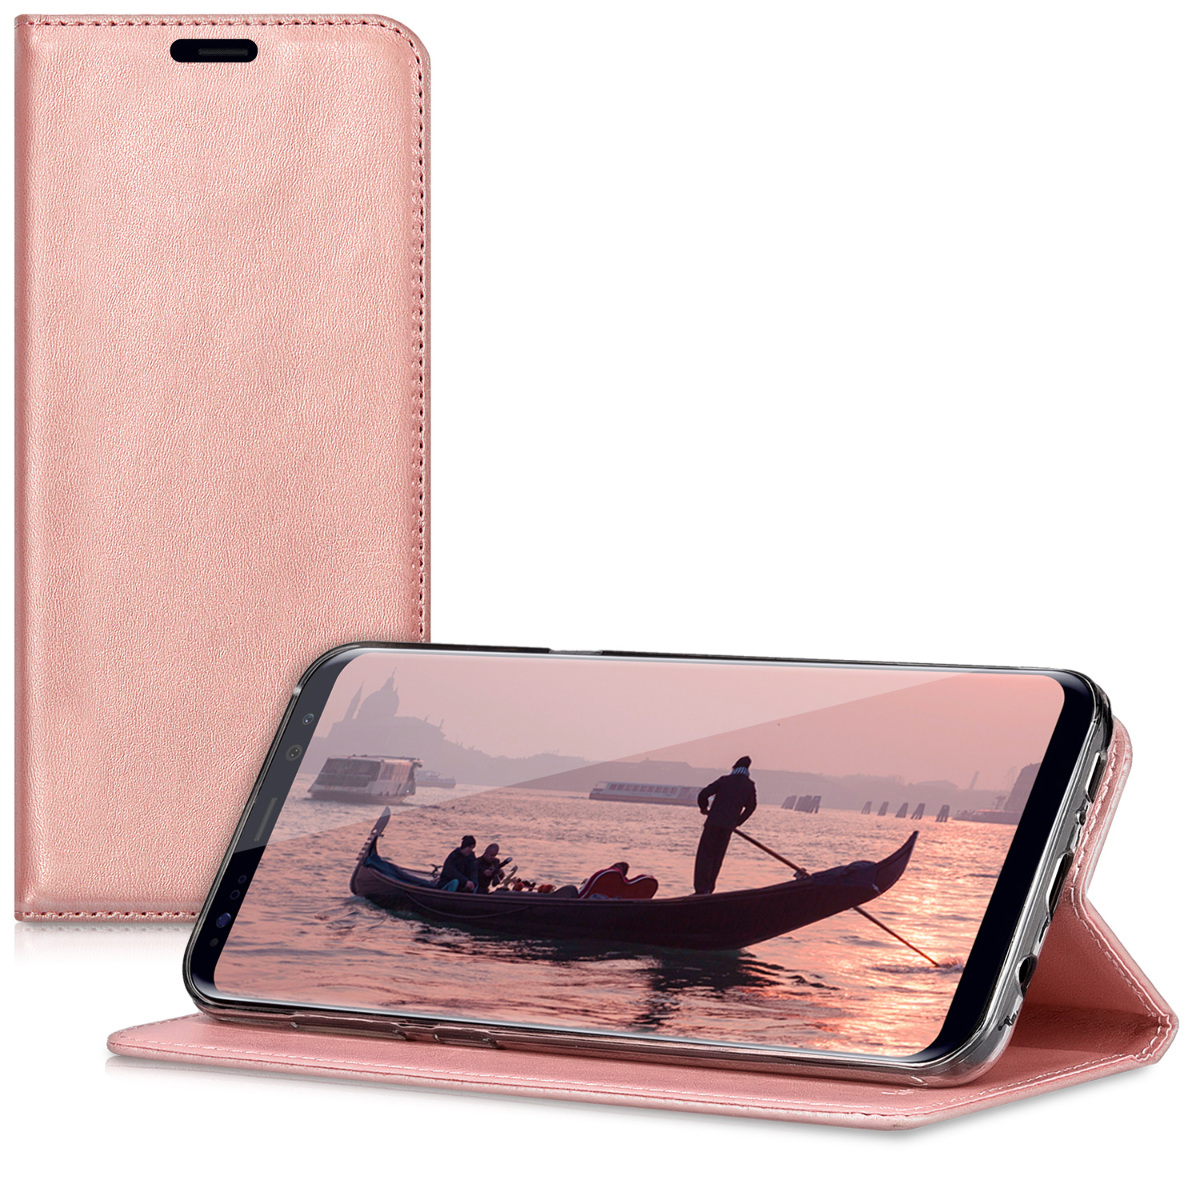 COVER-PER-SAMSUNG-GALAXY-S8-PLUS-CUSTODIA-A-LIBRO-IN-PELLE-PU